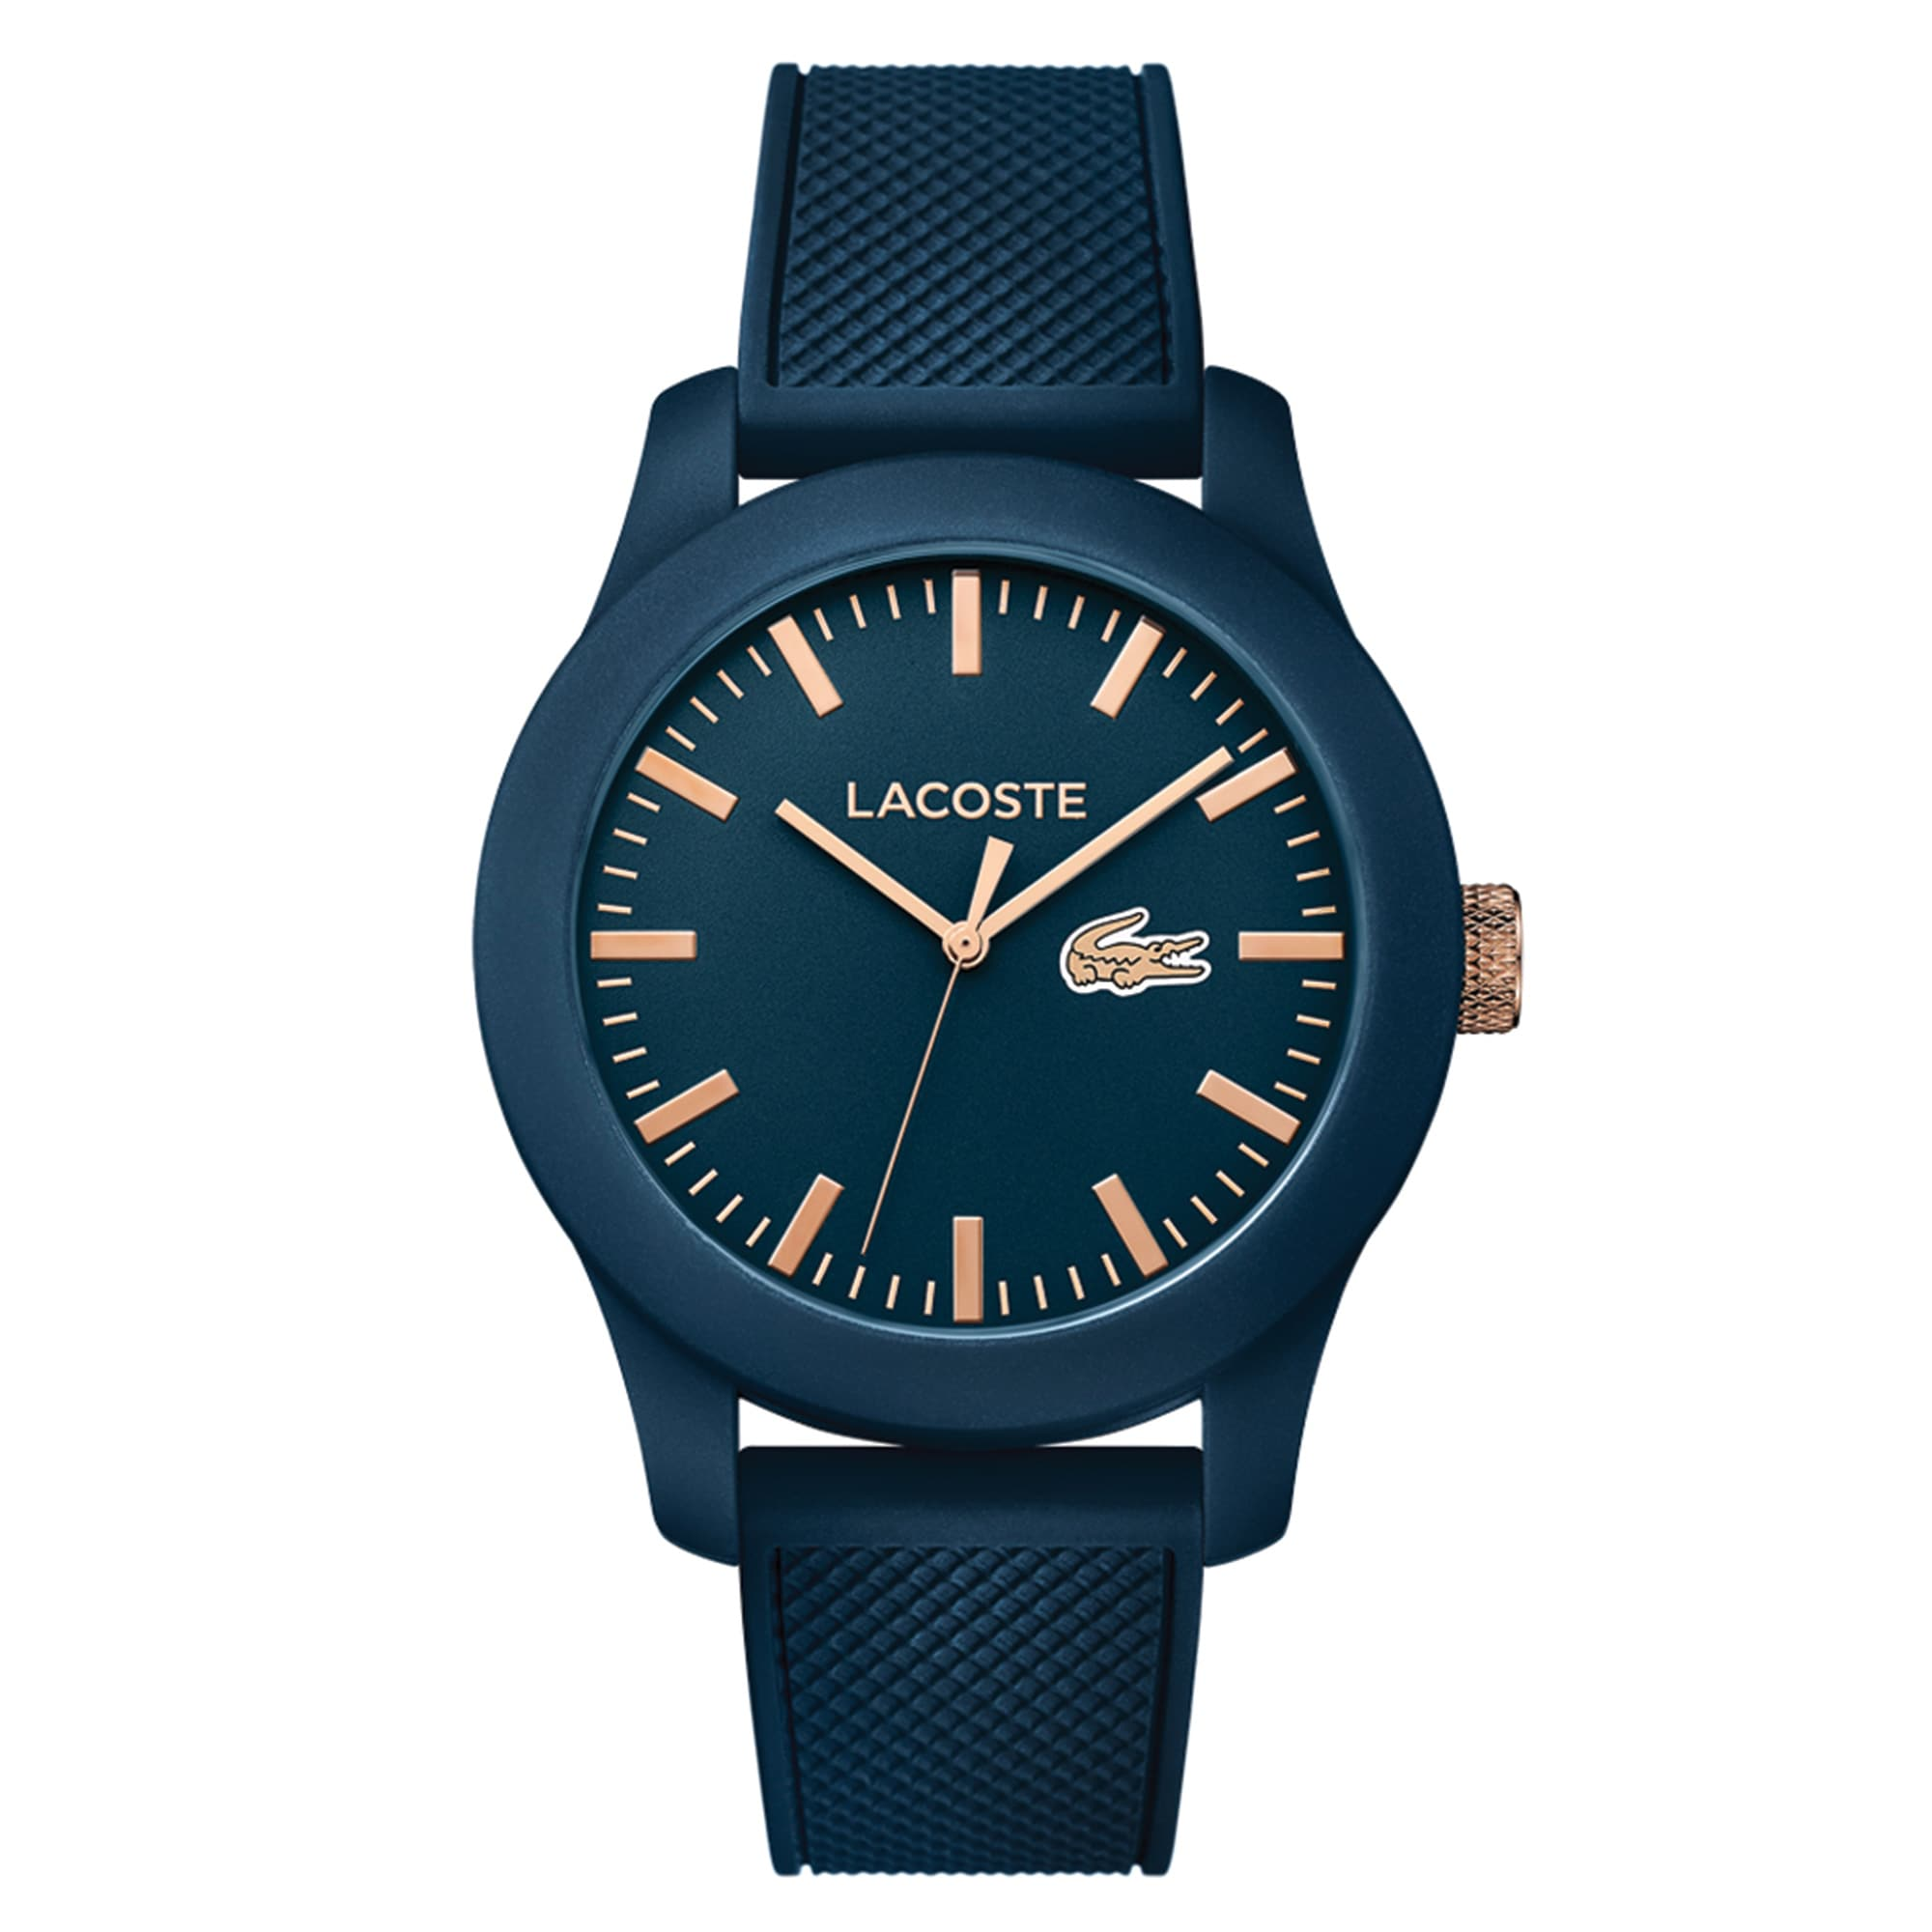 Unisex Lacoste 12.12 Blue Watch